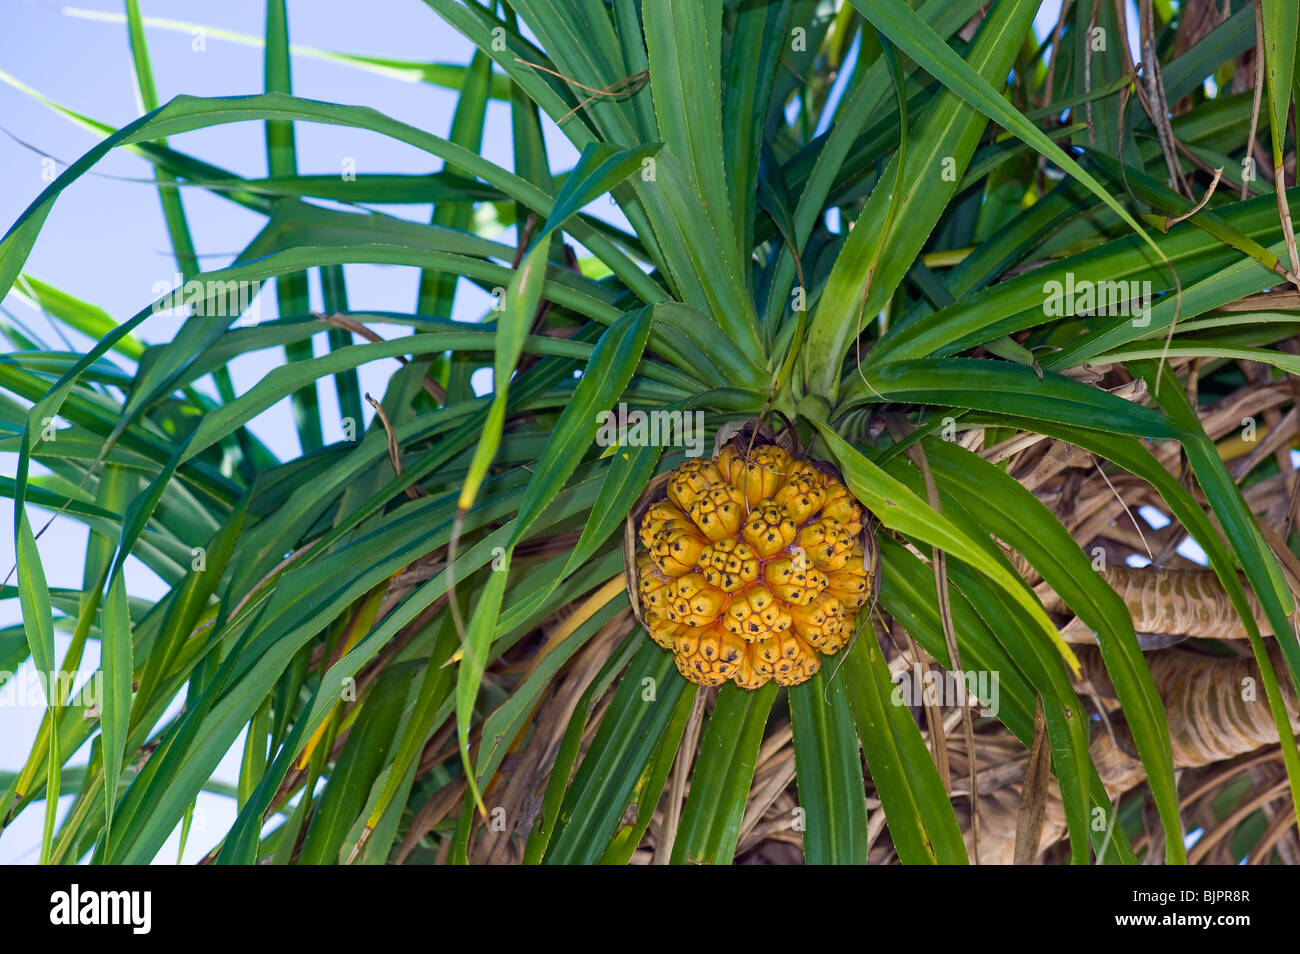 Screwpine Pandanus Utilis Pandanuss Tree Leaves Leaf Yellow Orange Stock Photo Alamy Free autumn leaves coloring page printable. https www alamy com stock photo screwpine pandanus utilis pandanuss tree leaves leaf yellow orange 28775399 html